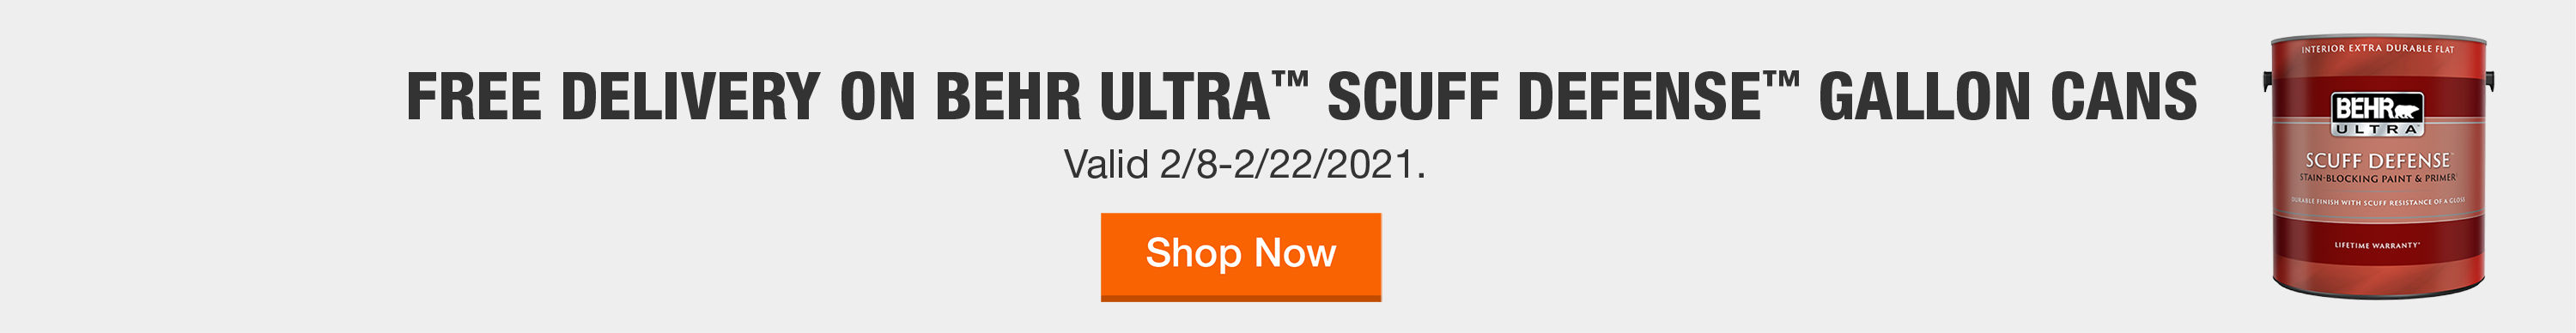 Free Delivery on Behr Ultra™ Scuff Defense™ Gallon. Tackle Your Paint Project with Exclusive Behr Ultra™  Valid 2/8-2/22/2021. Shop Now